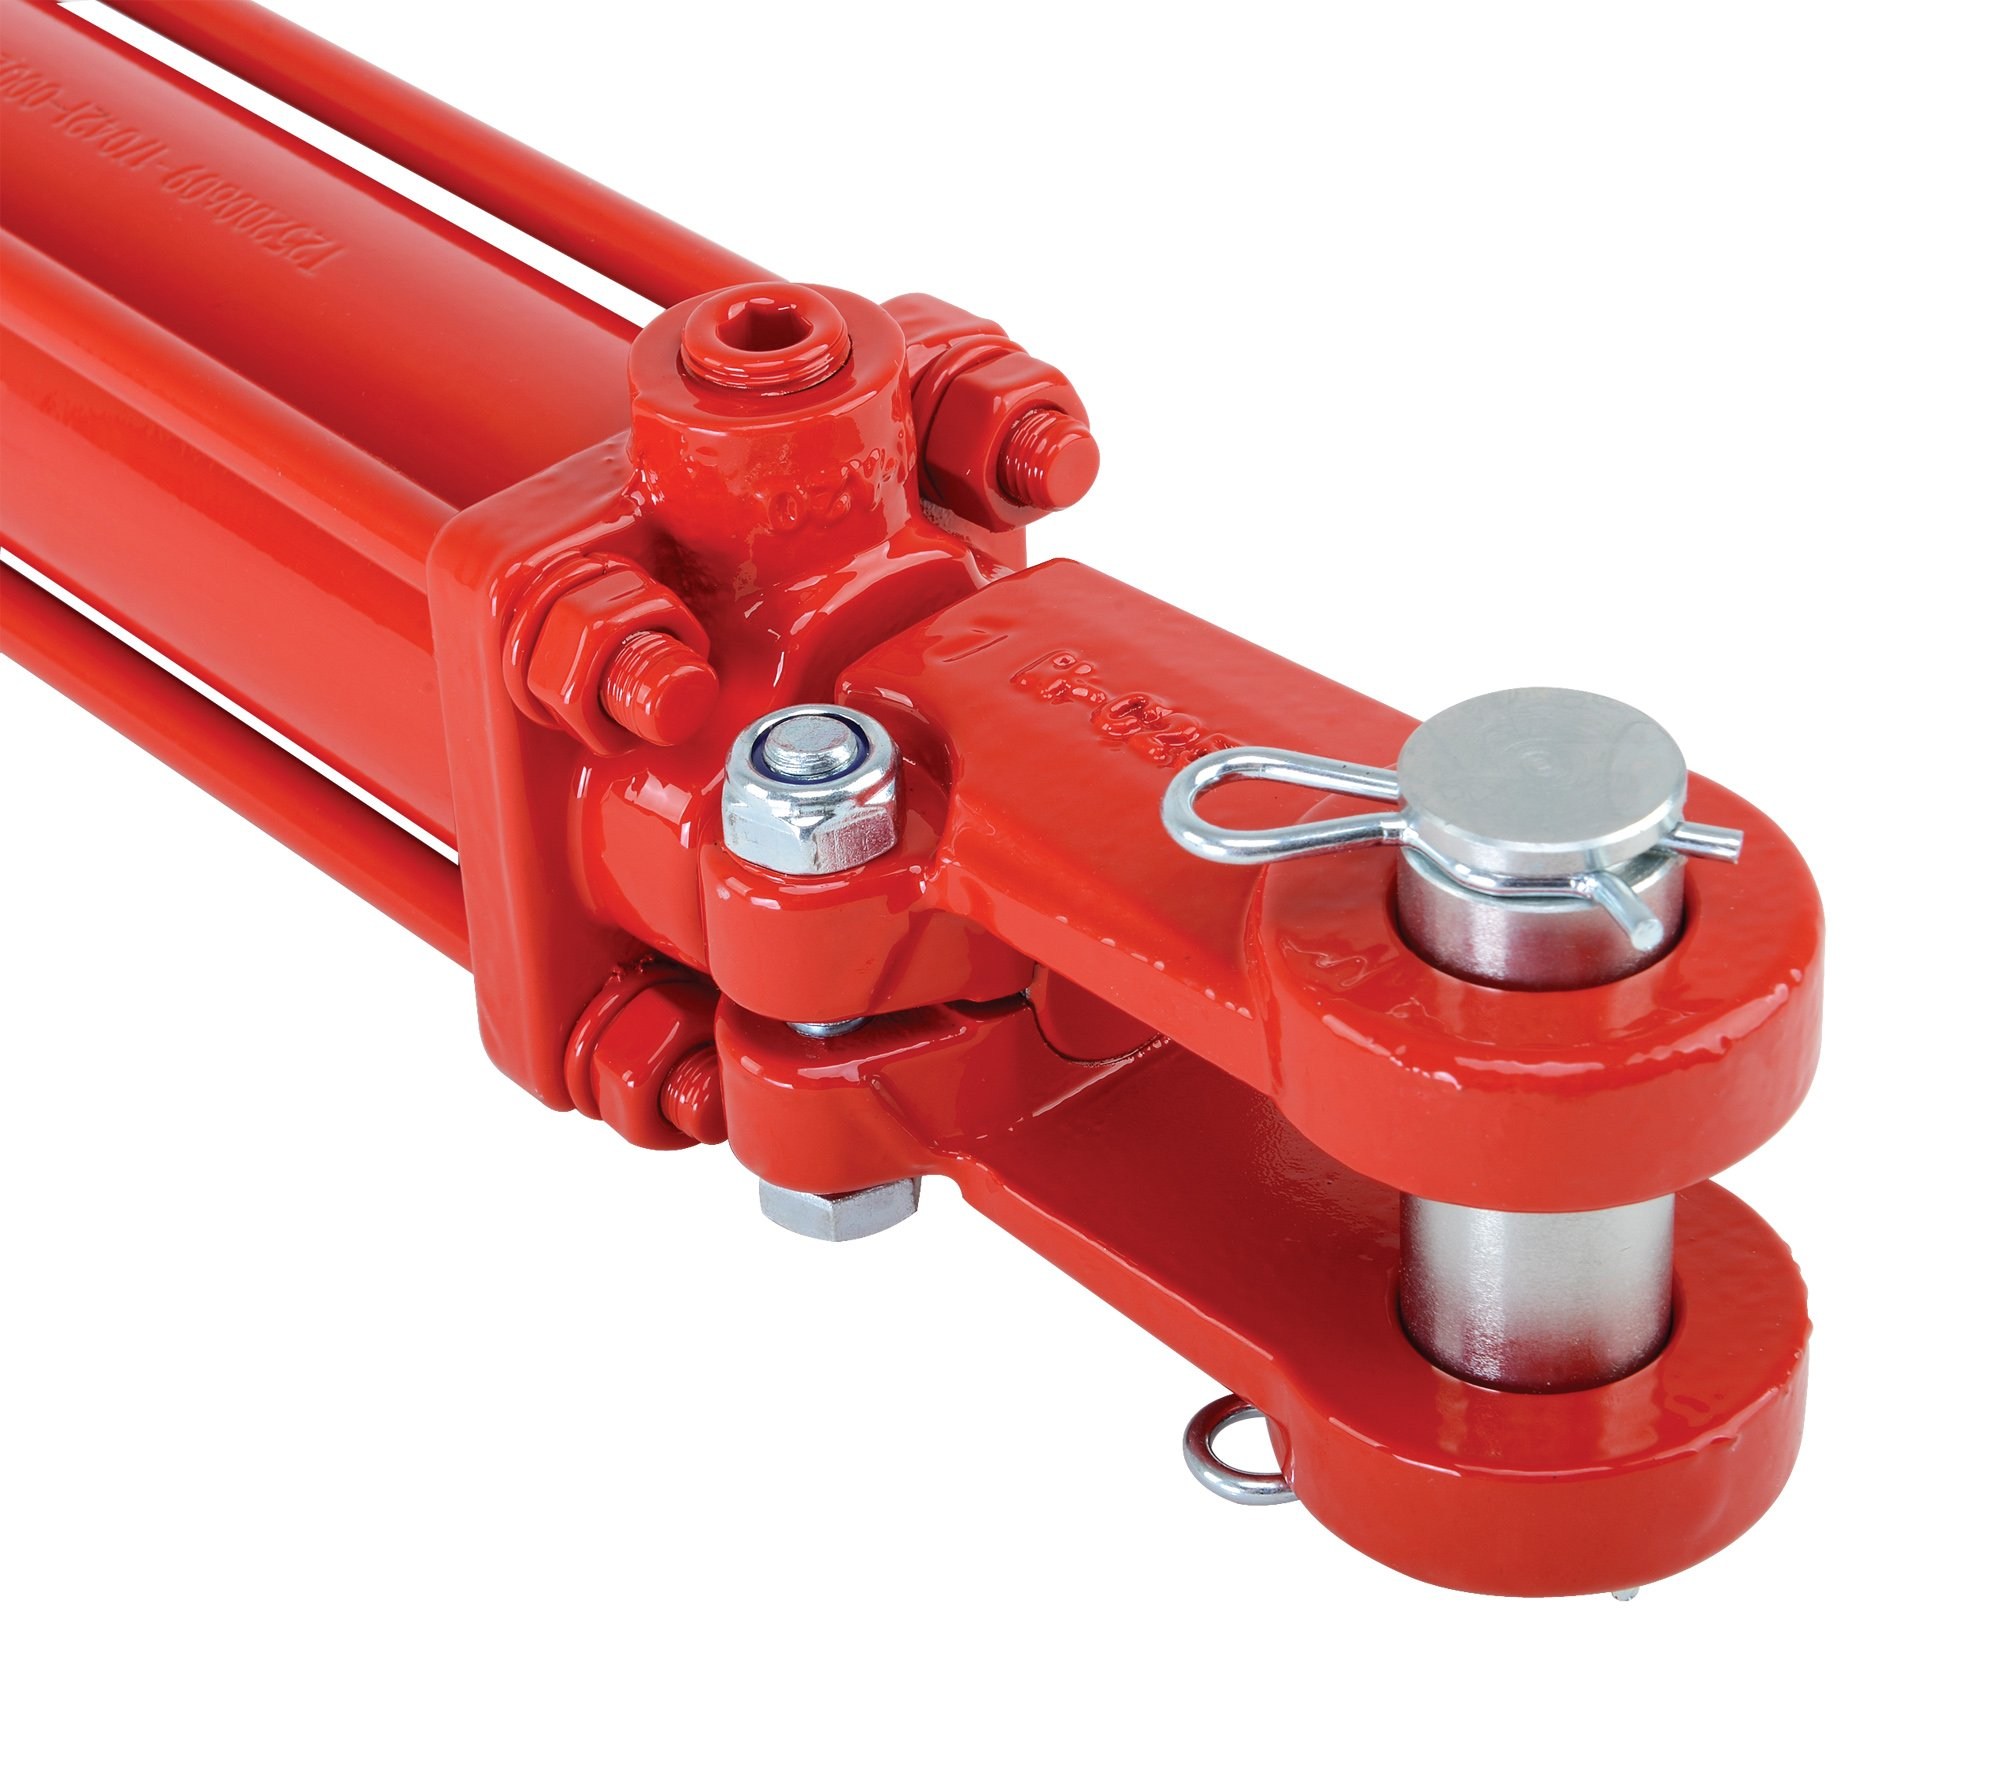 Hydroworks Double Acting 3-Inch Bore 24-Inch Stroke Tie Rod Hydraulic Cylinder, 2500psi  by Hydroworks (Image #3)